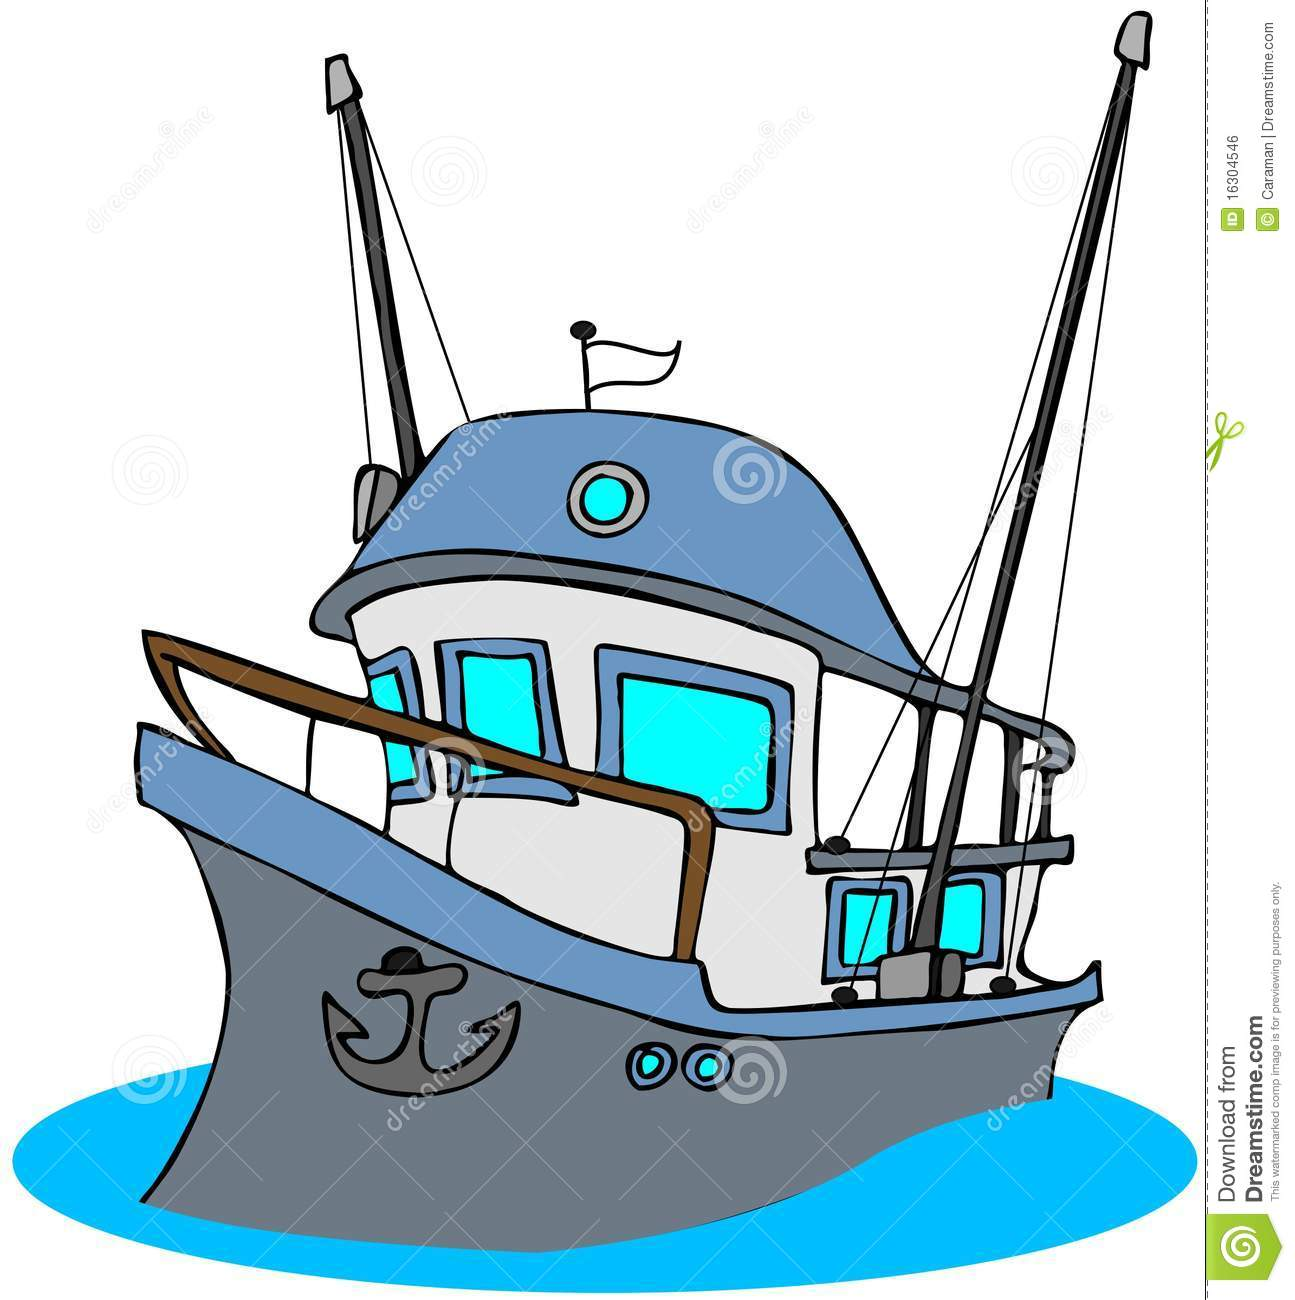 Fishing Trawler Royalty Free Stock Image.